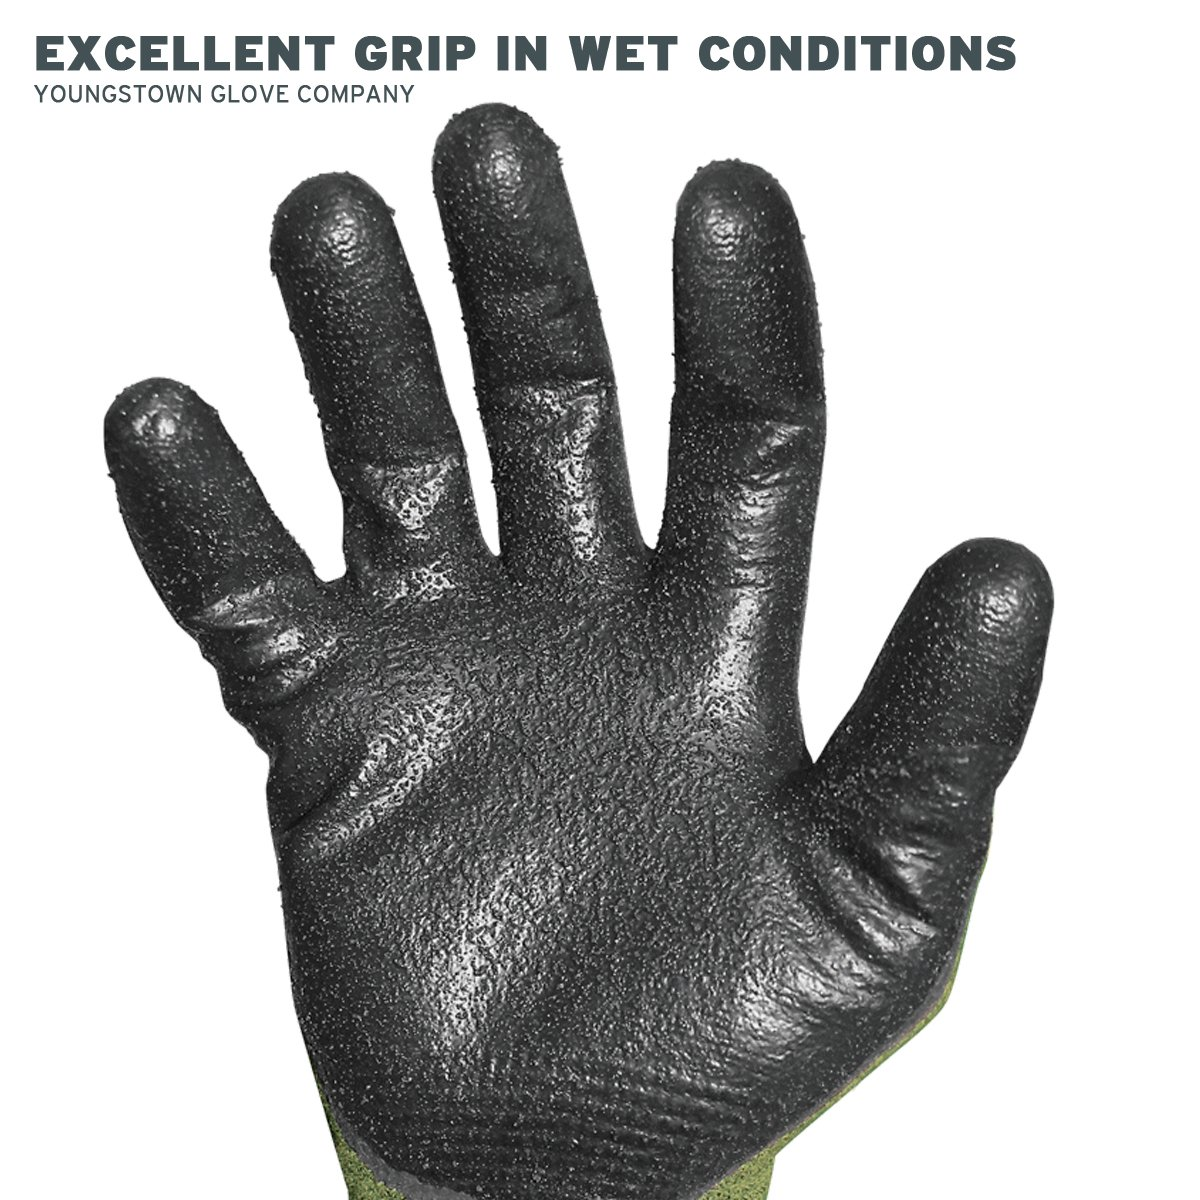 Youngstown Glove 12-4000-60-L FR 4000 Cut-Resistant Gloves, Large, Multicolored by Youngstown Glove Company (Image #4)